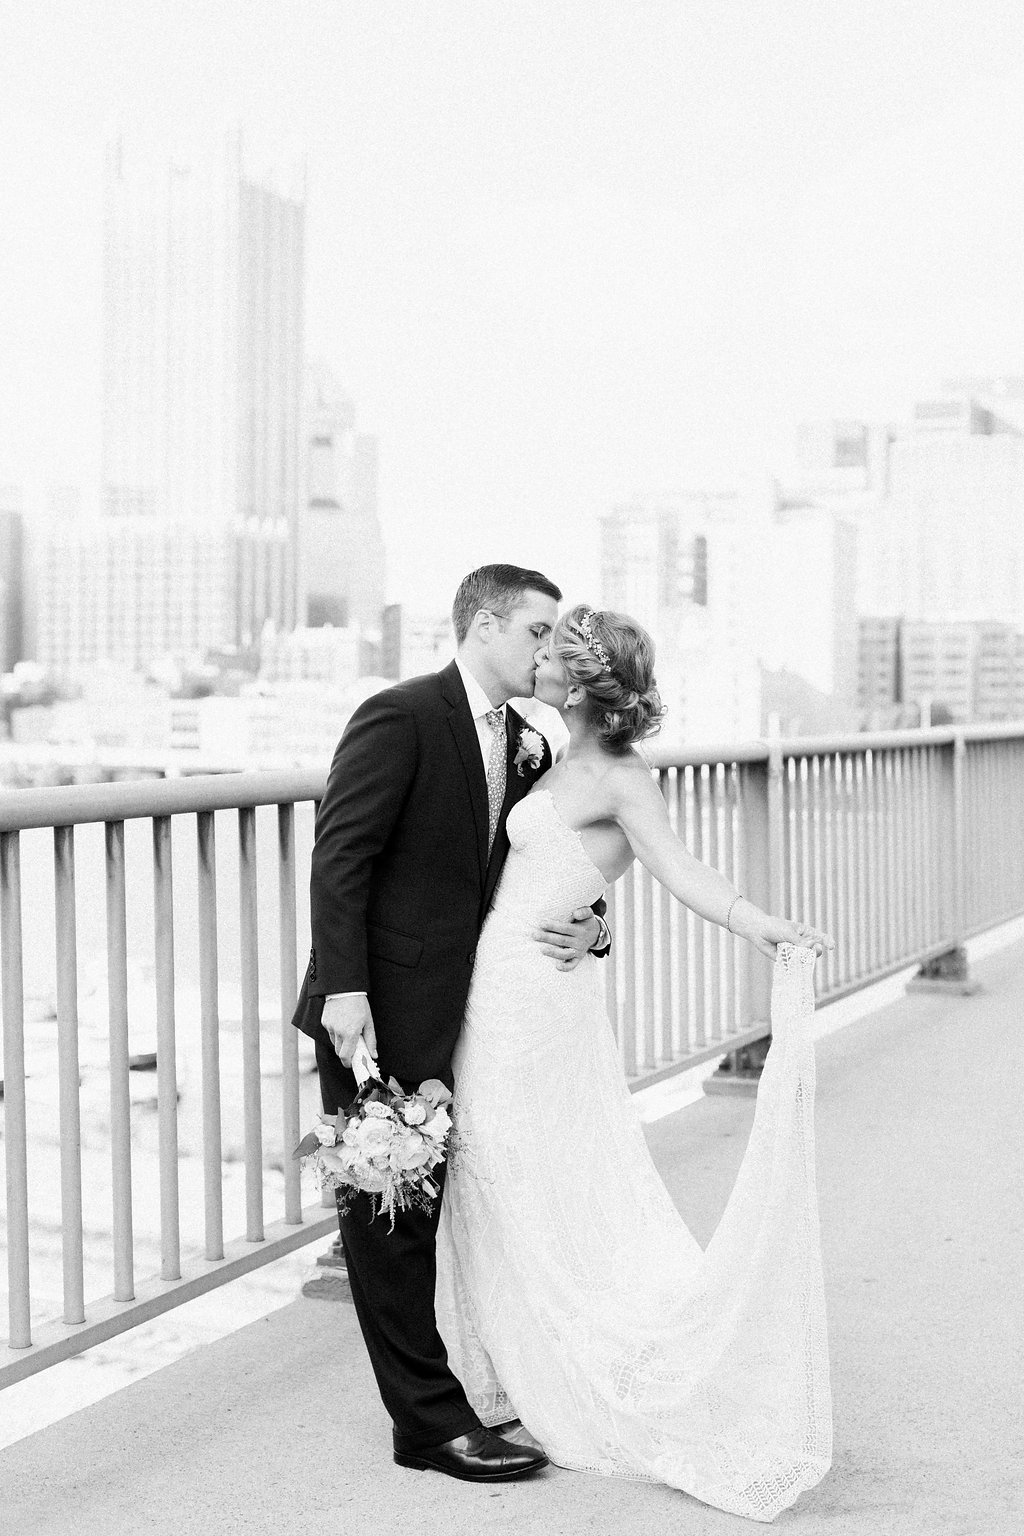 Black and white photograph of the bride and groom on Smithfield Street Bridge overlooking Pittsburgh city skyline - 1920's inspired wedding Grand Concourse